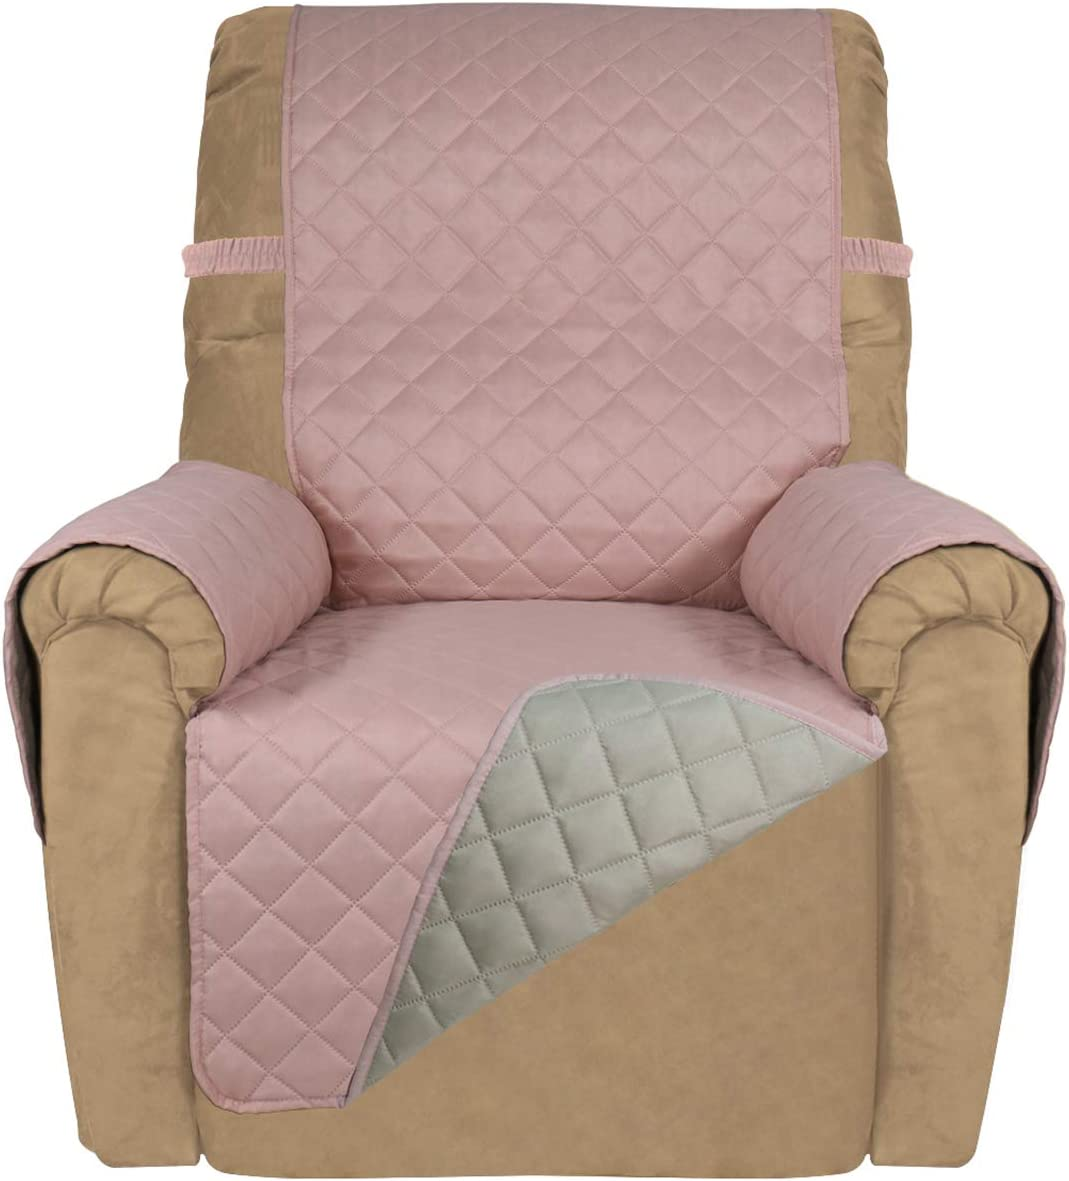 PureFit Reversible Quilted Recliner Sofa Cover, Water Resistant Slipcover Furniture Protector, Washable Couch Cover with Elastic Straps for Kids, Dogs, Pets (Recliner, Pink/Beige)